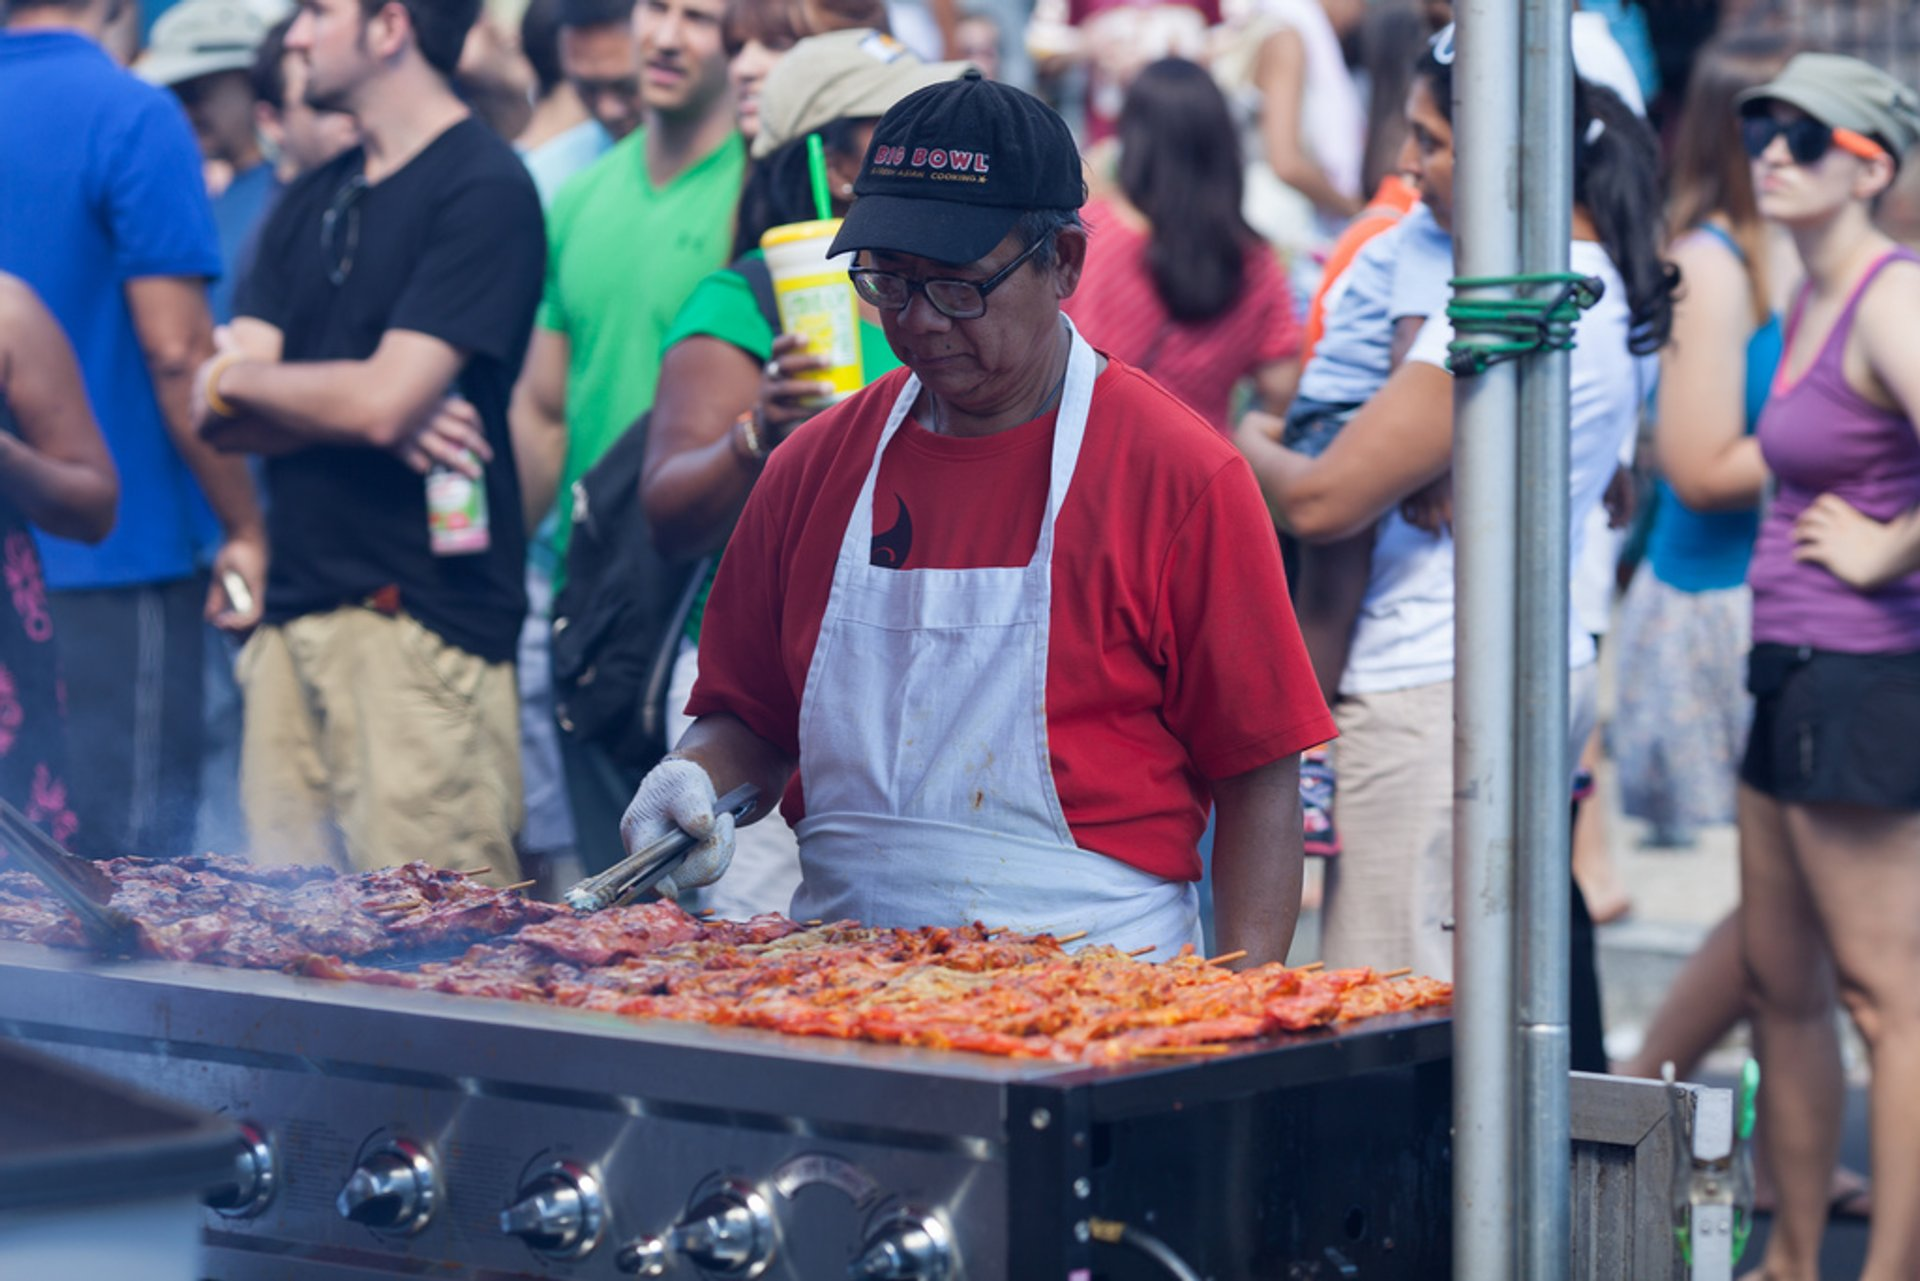 Adams Morgan Day in Washington, D.C. - Best Season